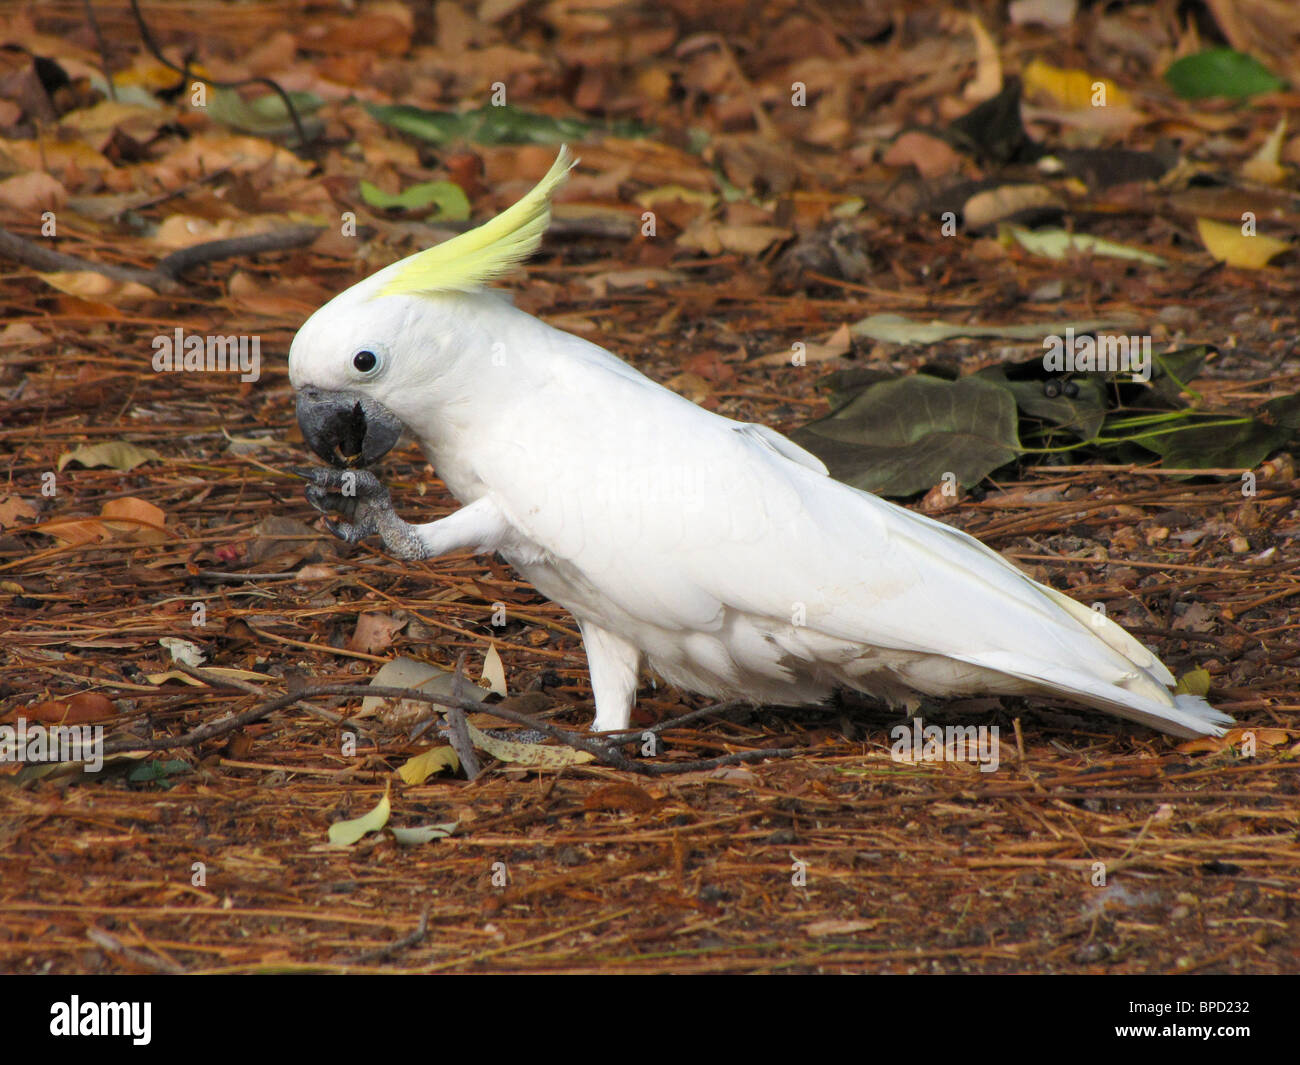 A Sulphur-crested Cockatoo (Cacatua galerita) foraging on the ground in Kakadu National Park, Northern Territory, - Stock Image